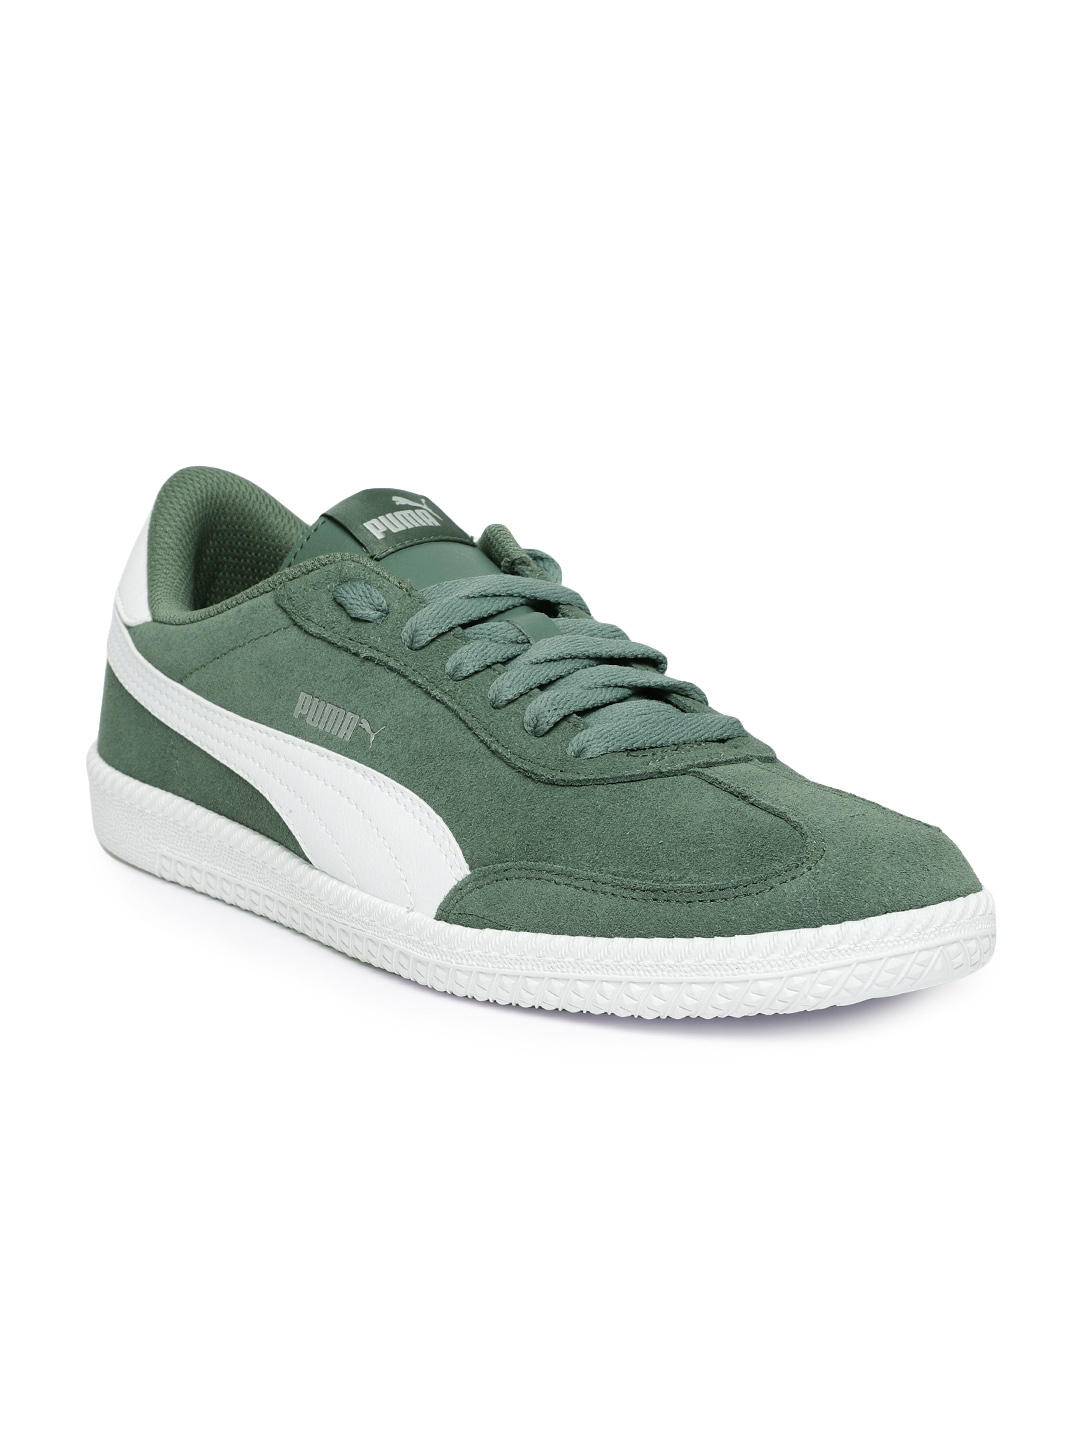 9f4ada5f055a Buy Puma Men Olive Green Astro Cup Suede Sneakers - Casual Shoes for ...